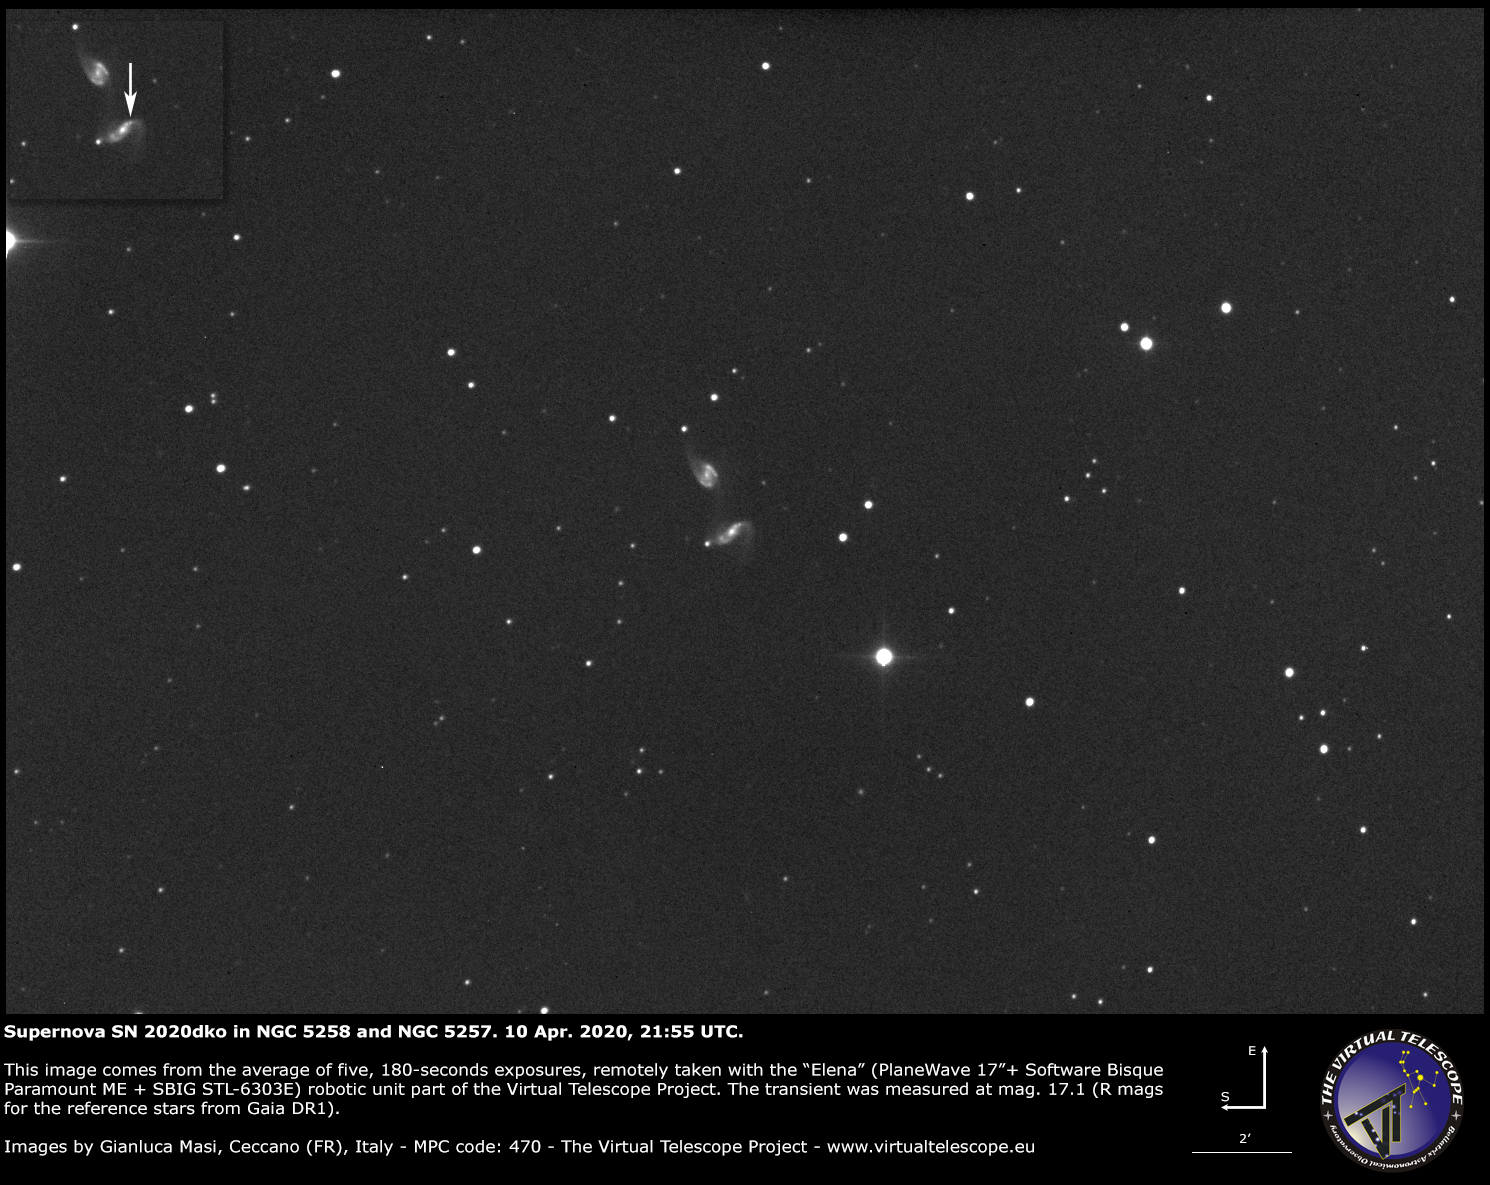 NGC 5258 and supernova SN 2020dko - 10 Apr. 2020